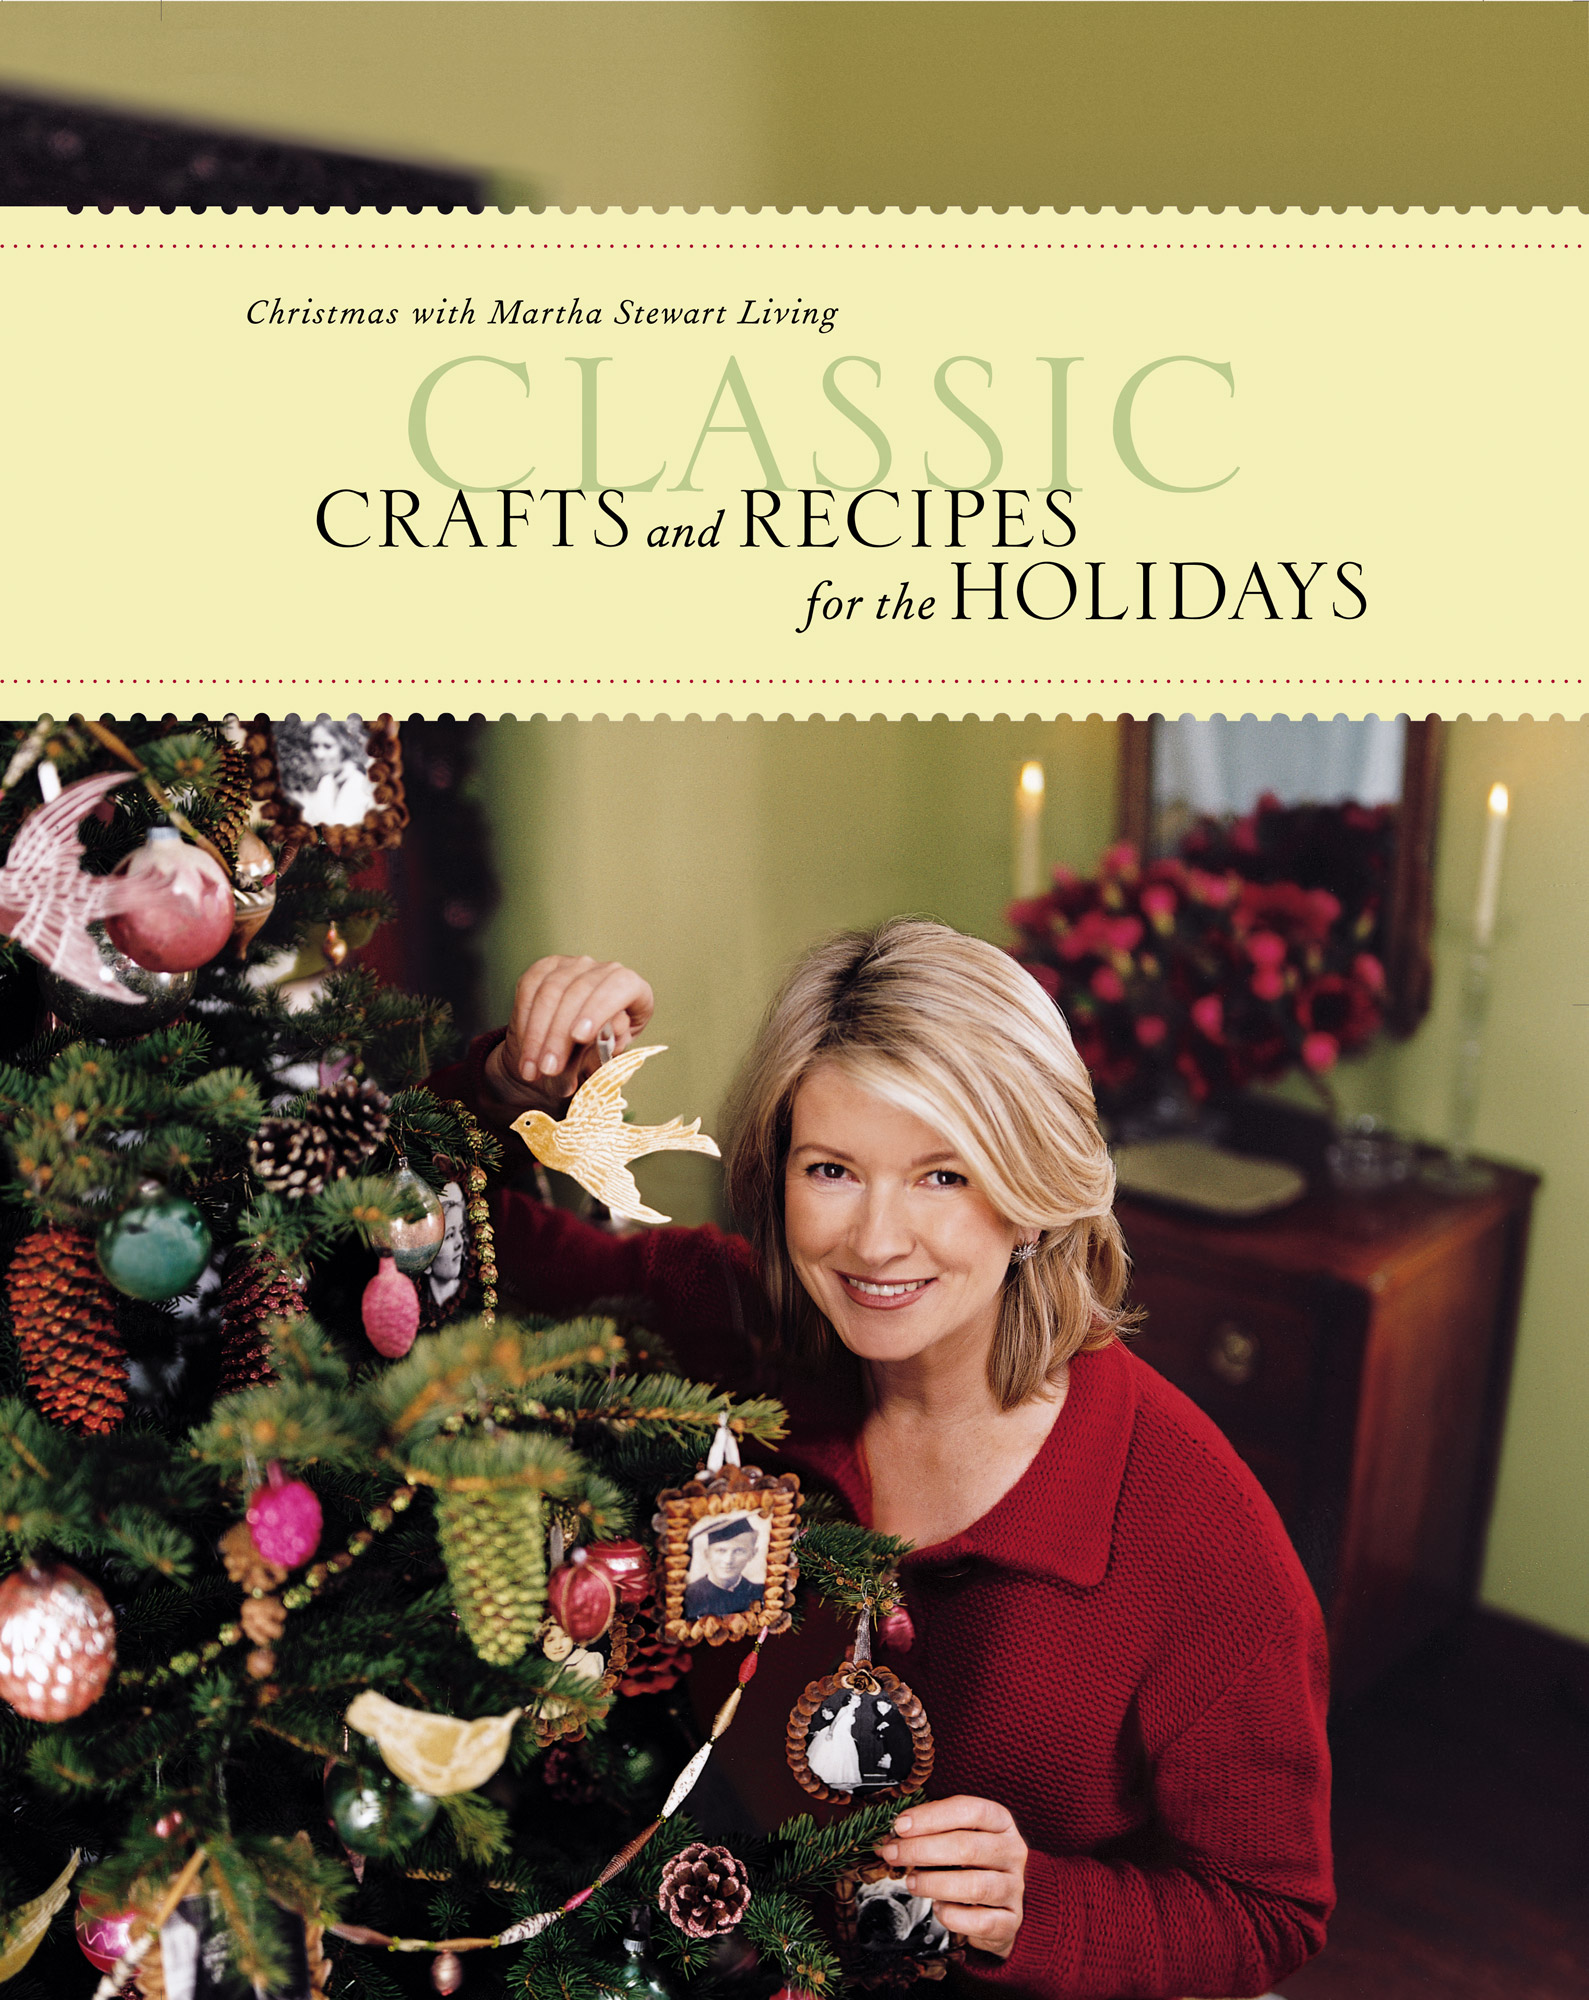 Christmas with Martha Stewart Living: Classic Crafts and Recipes for the Holidays